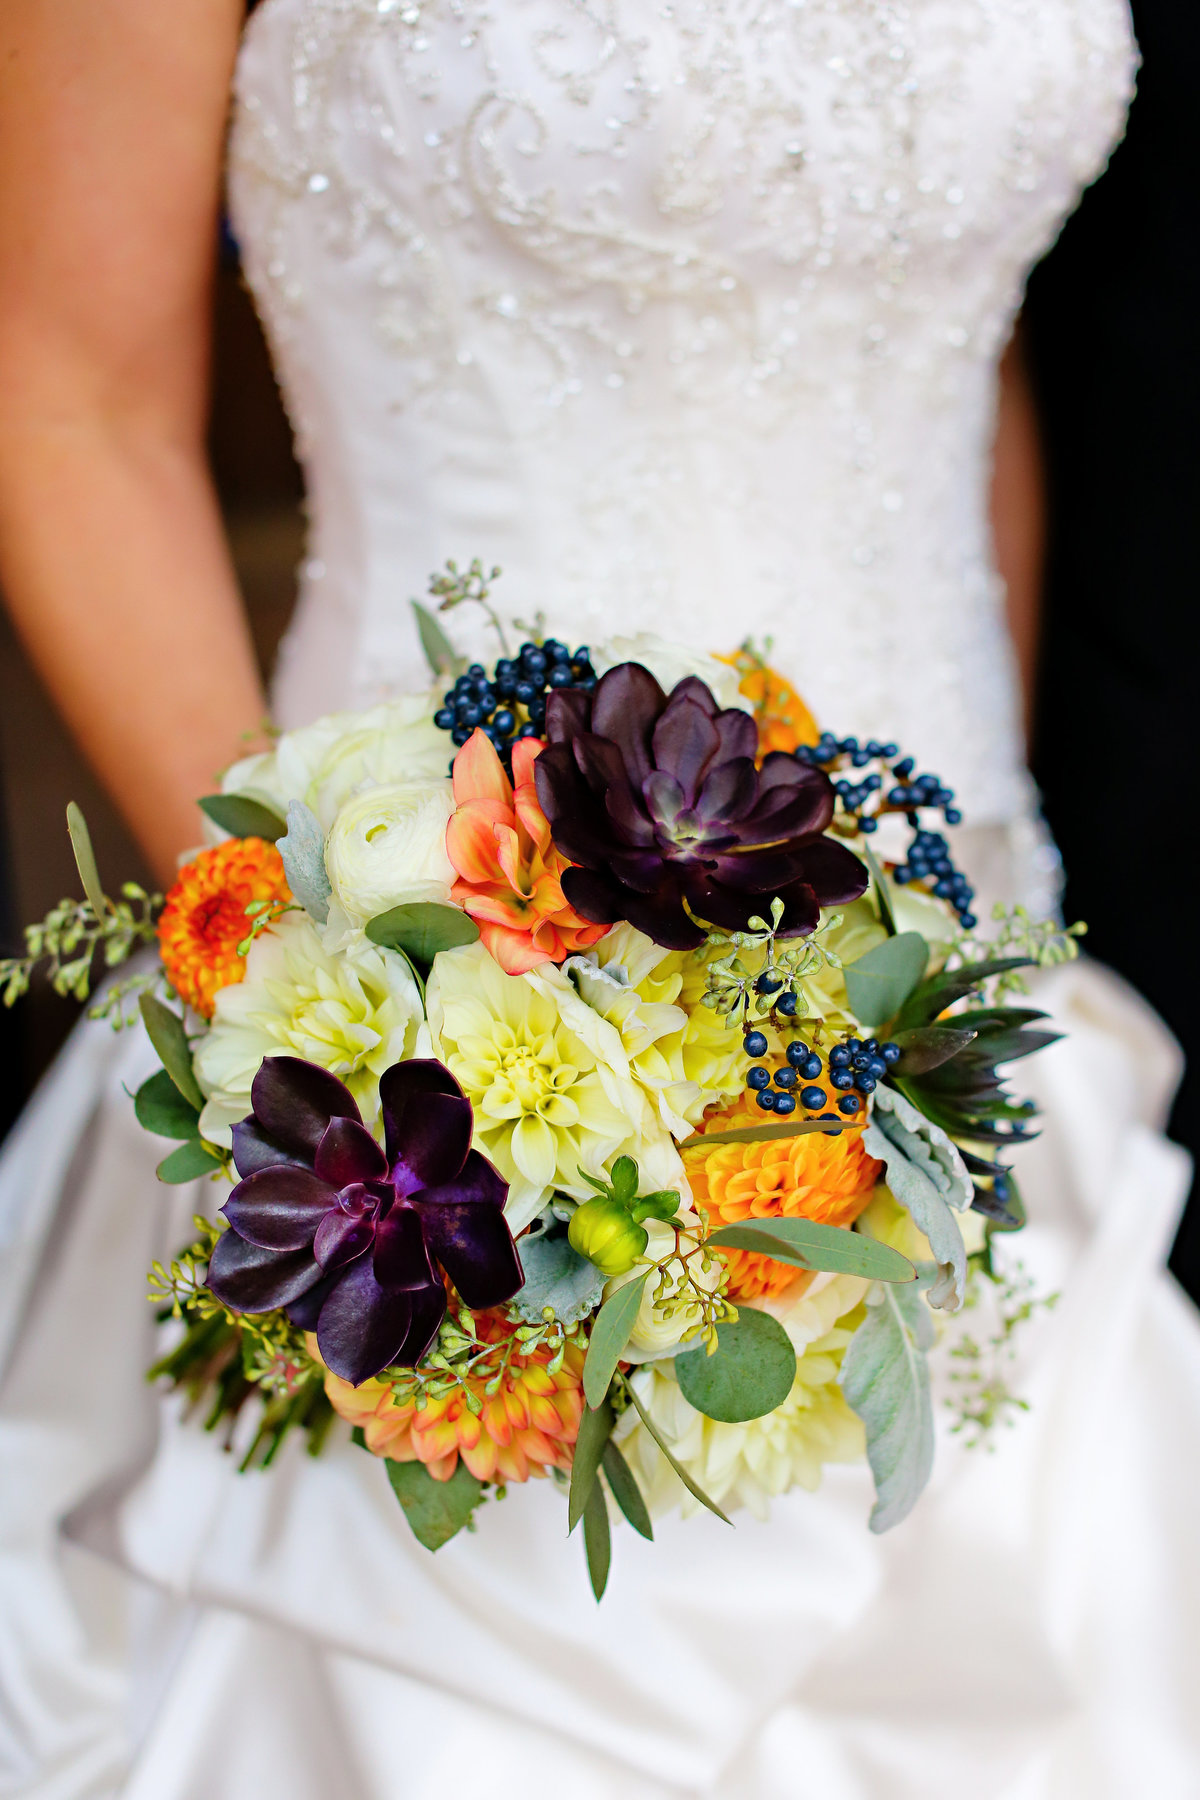 Dana & Bill - Bridal Bouquet